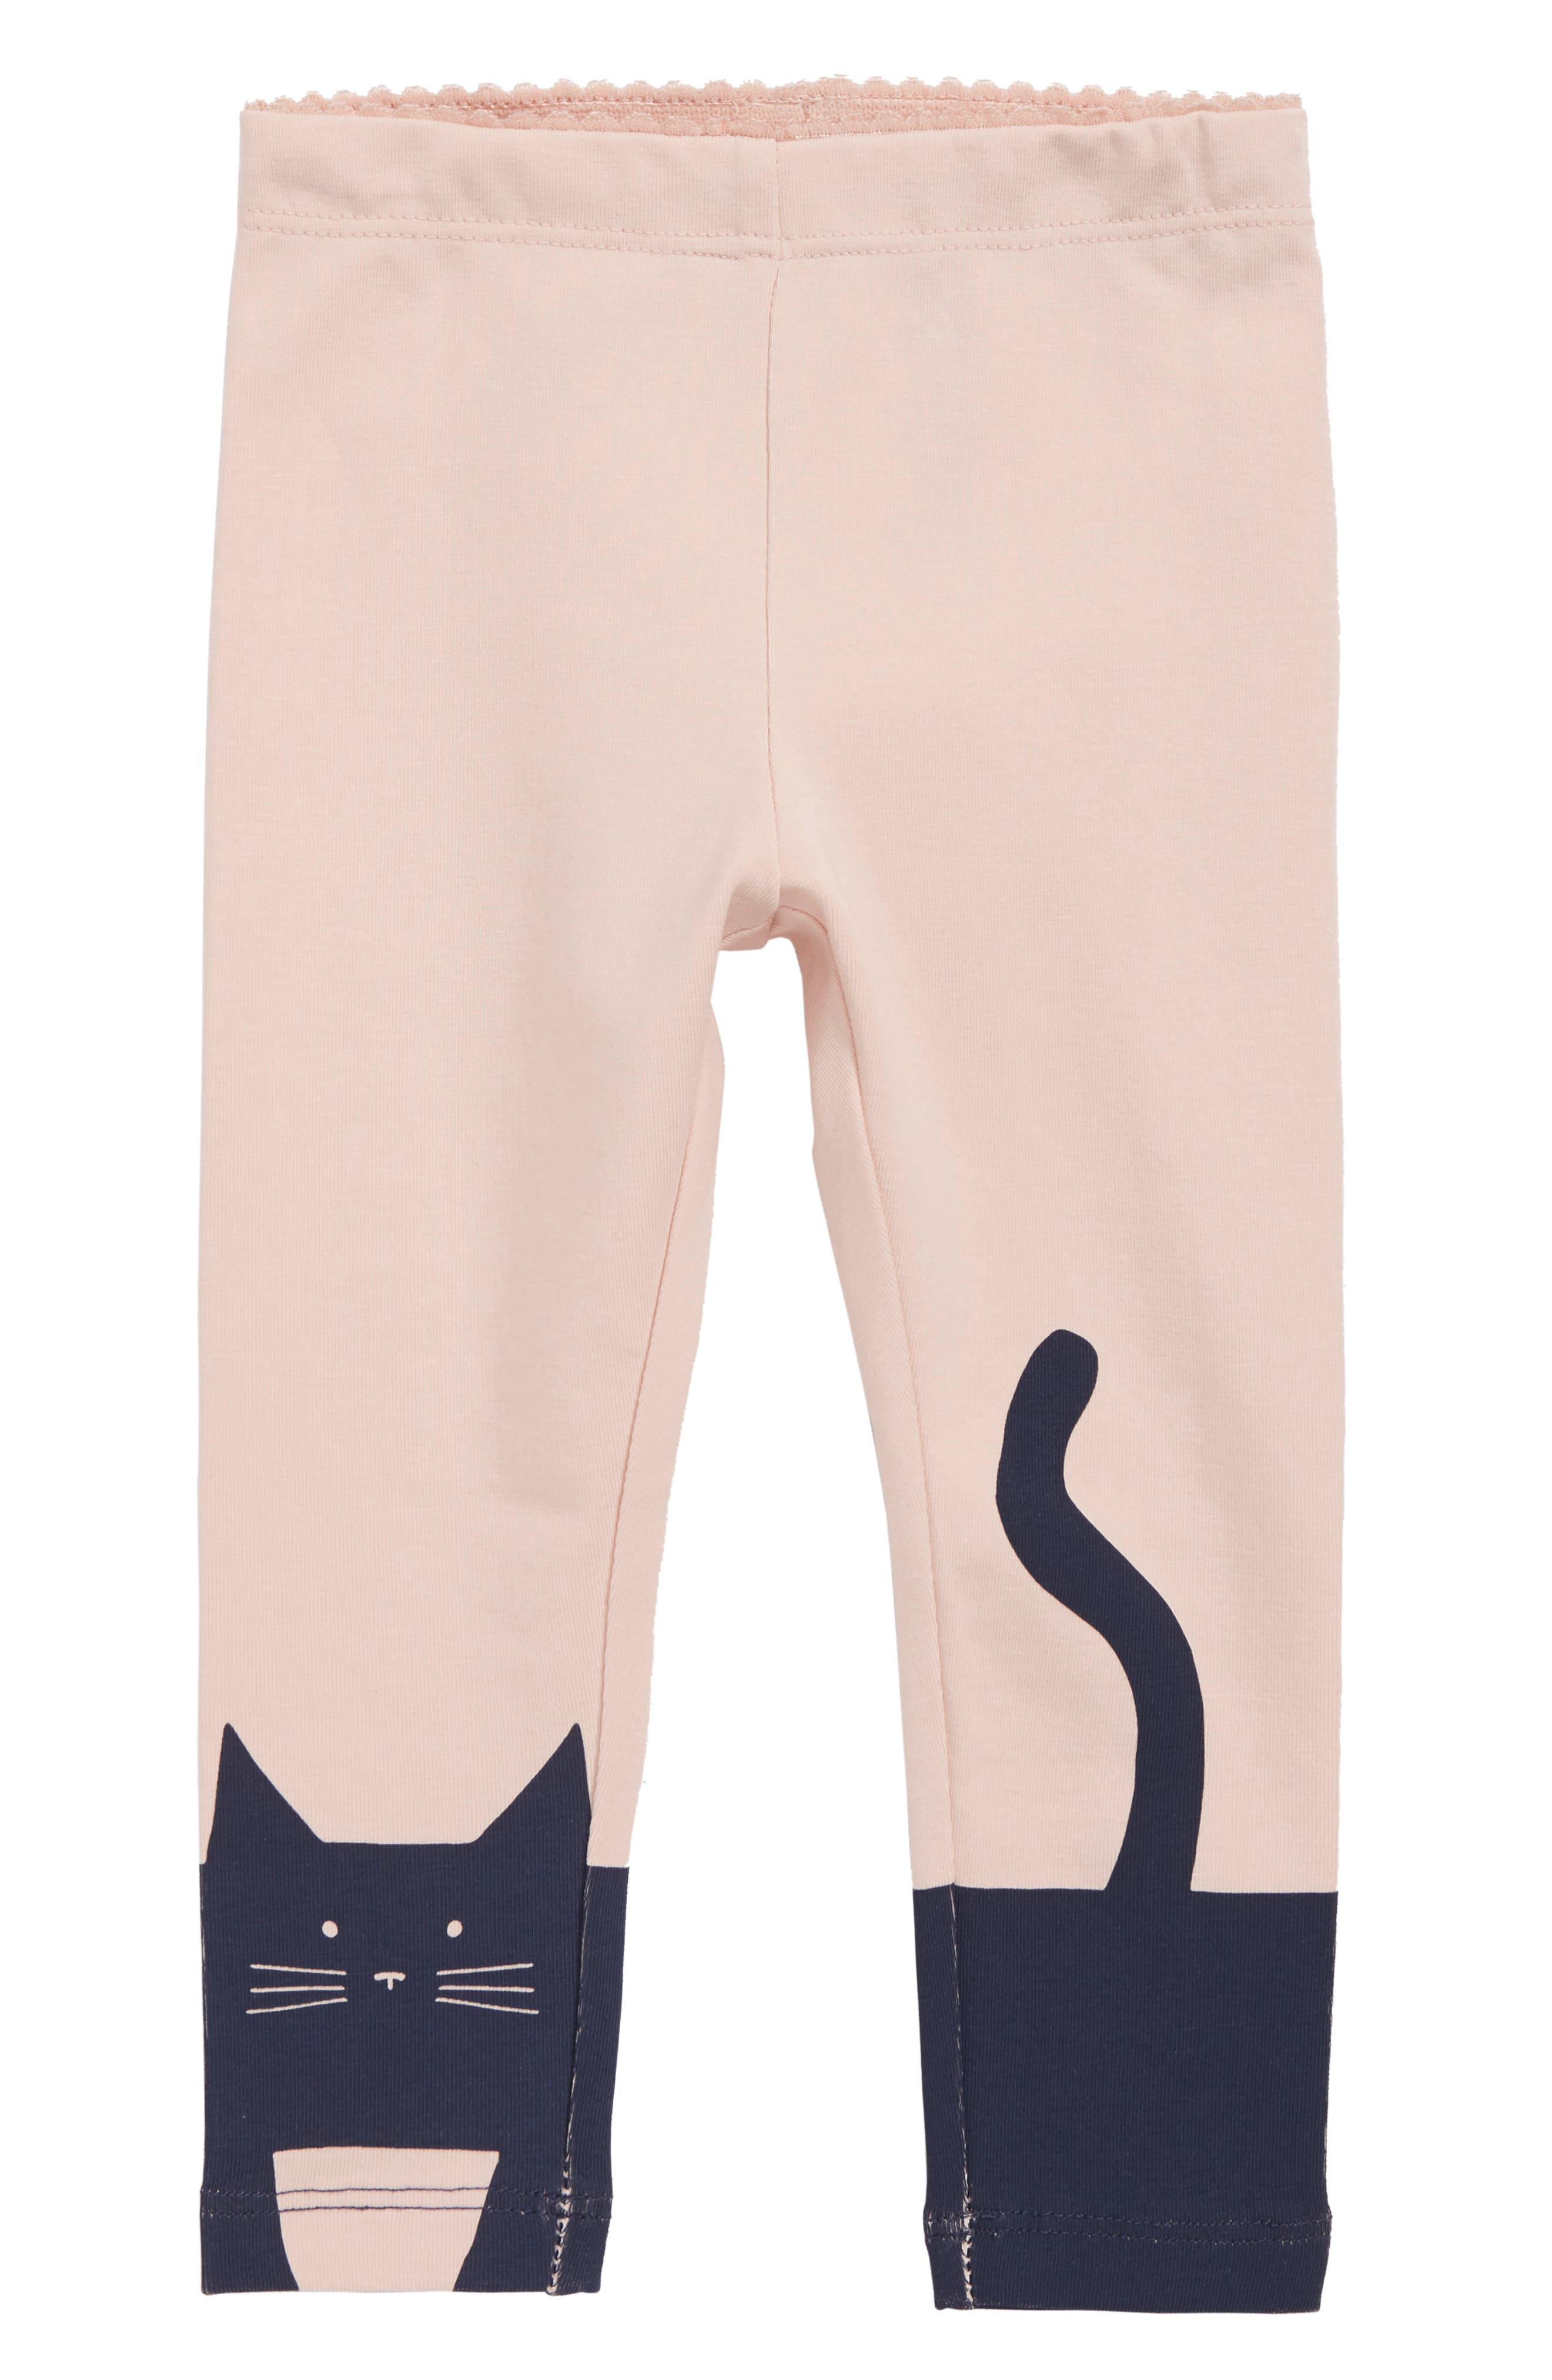 Curious Cat Leggings,                             Main thumbnail 1, color,                             686